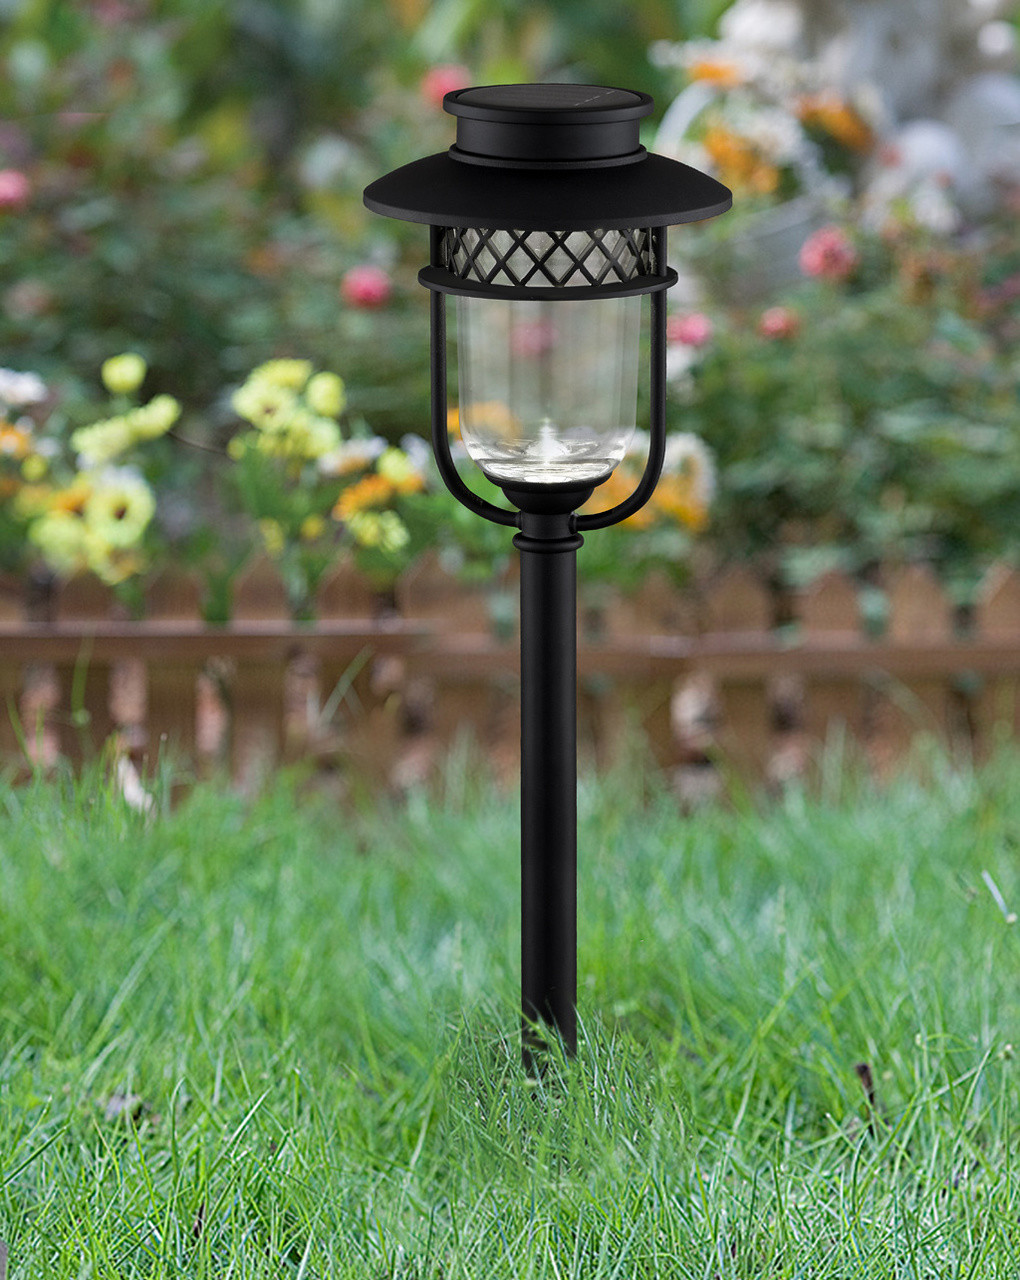 white set of 2  $49 00  solar garden lights are made from black  stainless steel and glass lenses